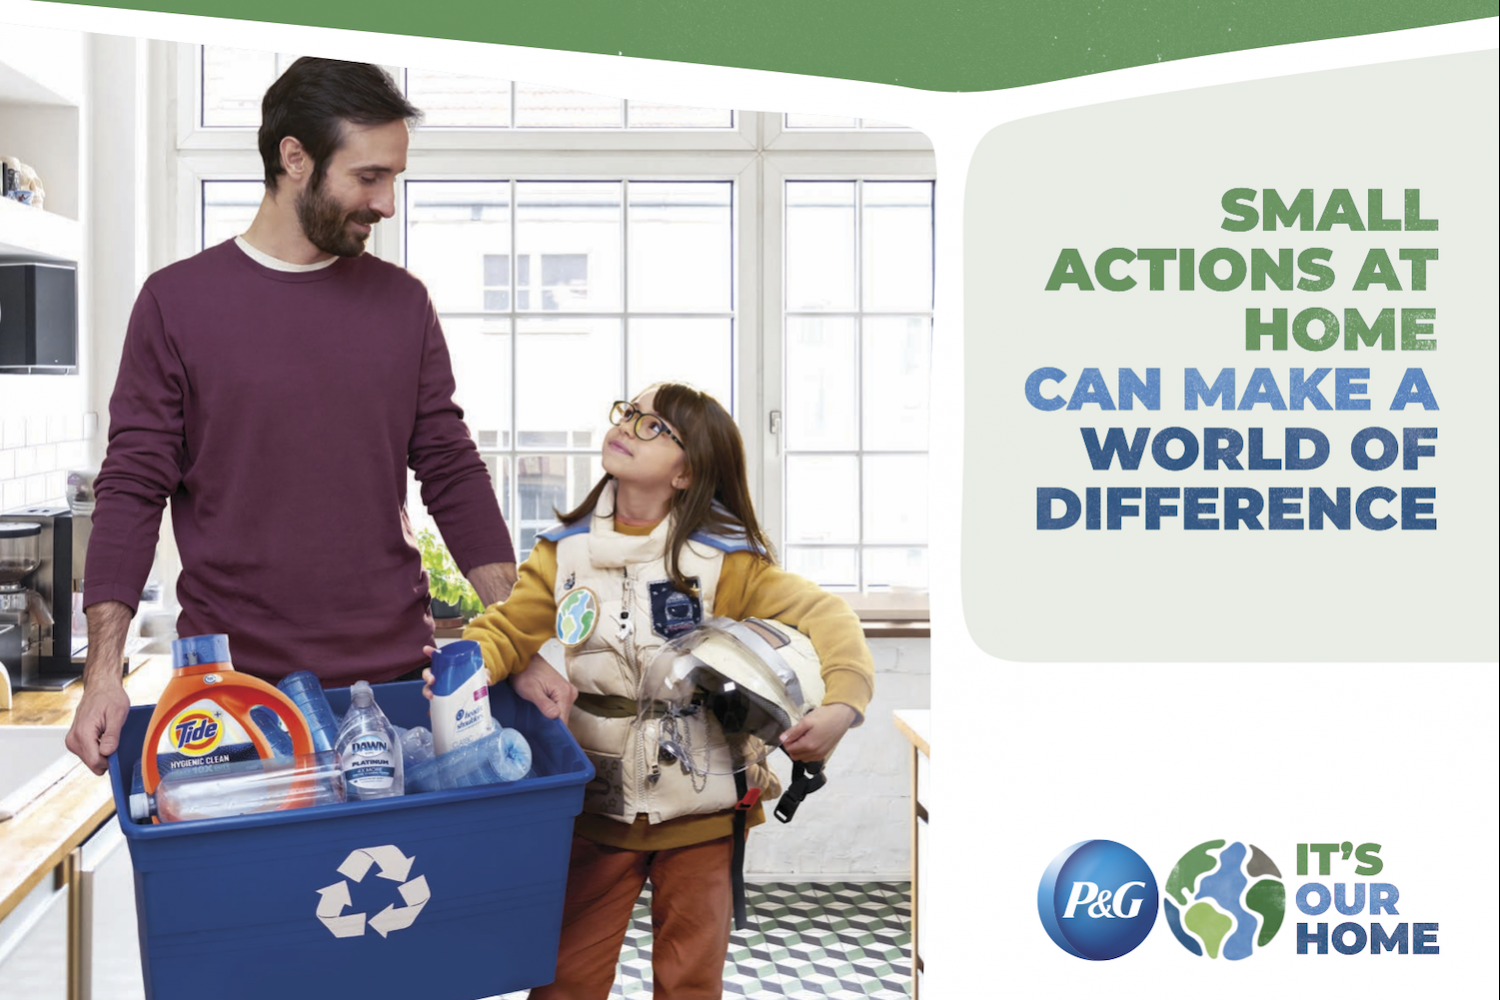 Procter and Gamble Small Actions at Home